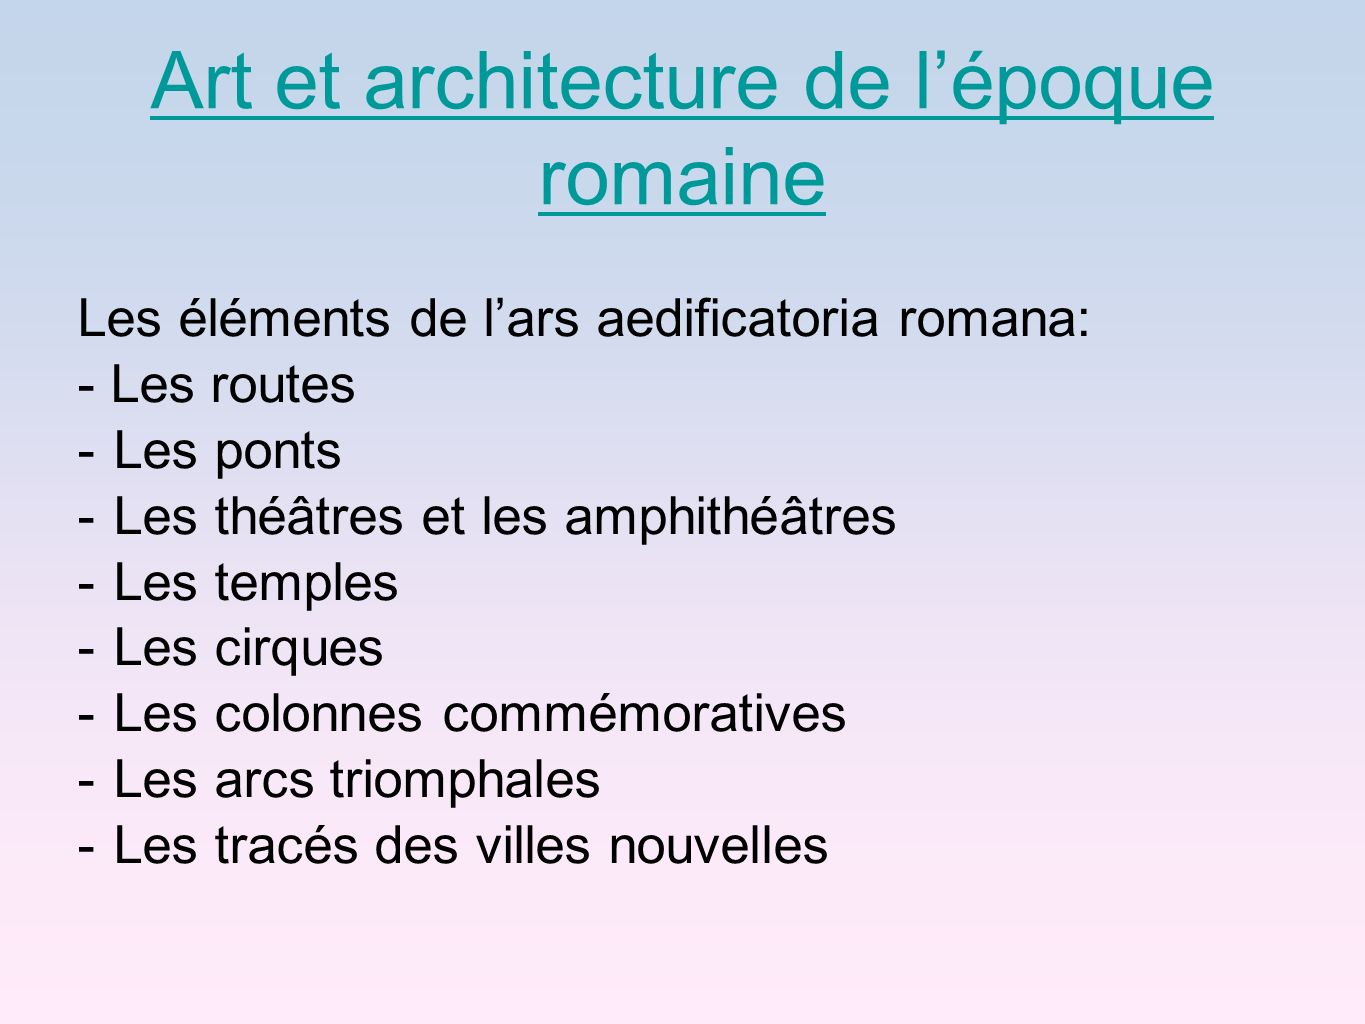 Art et architecture de l'époque romaine